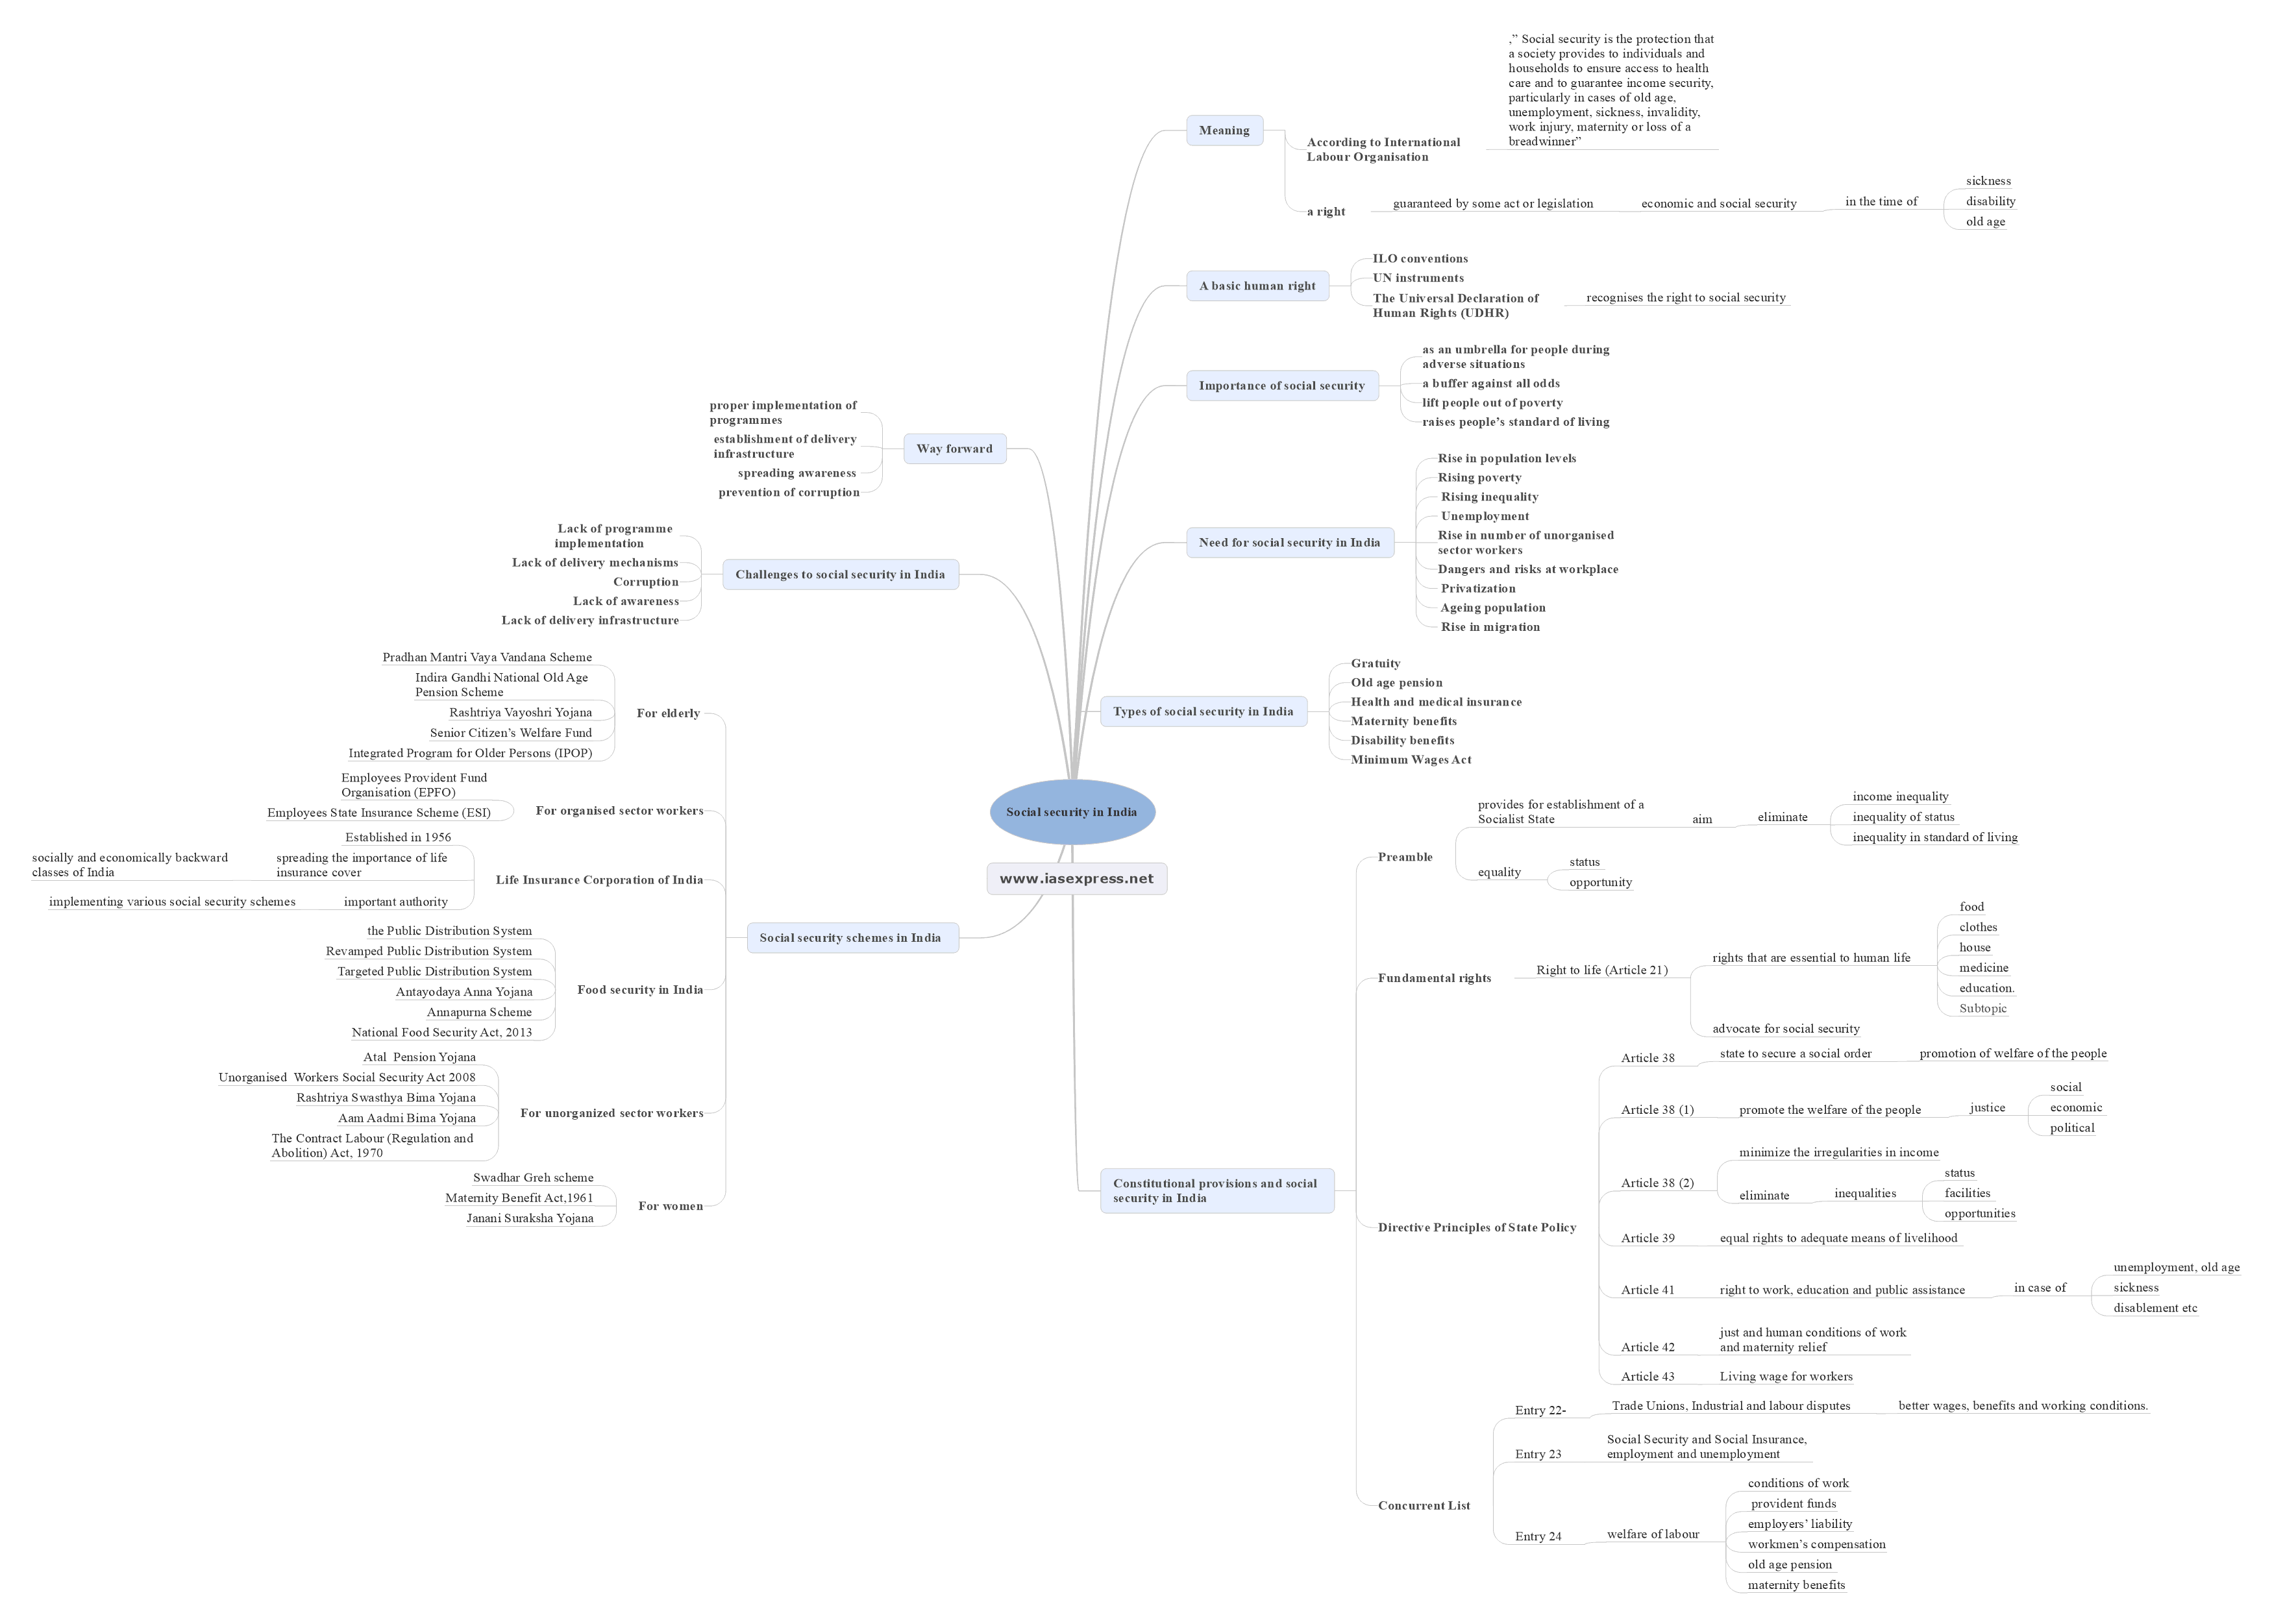 social security in India mindmap